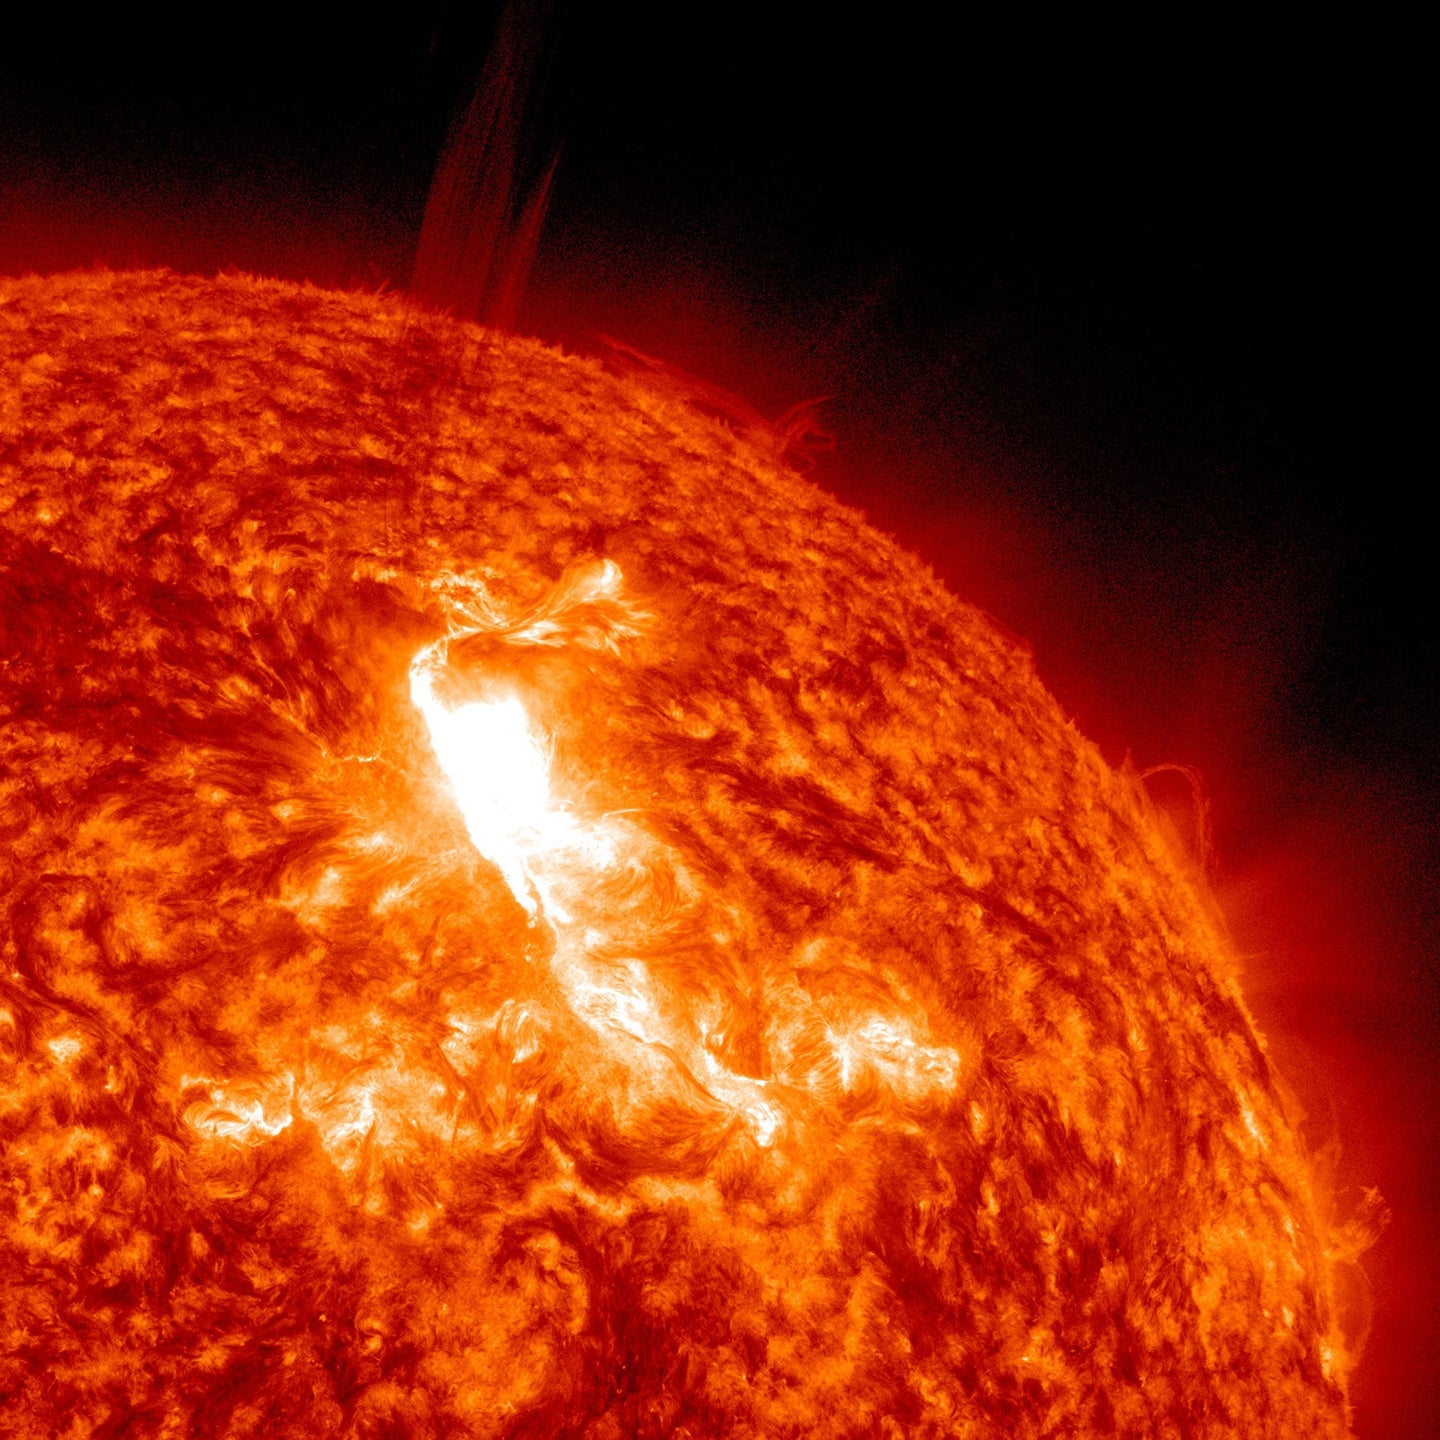 The hot sun in cold space